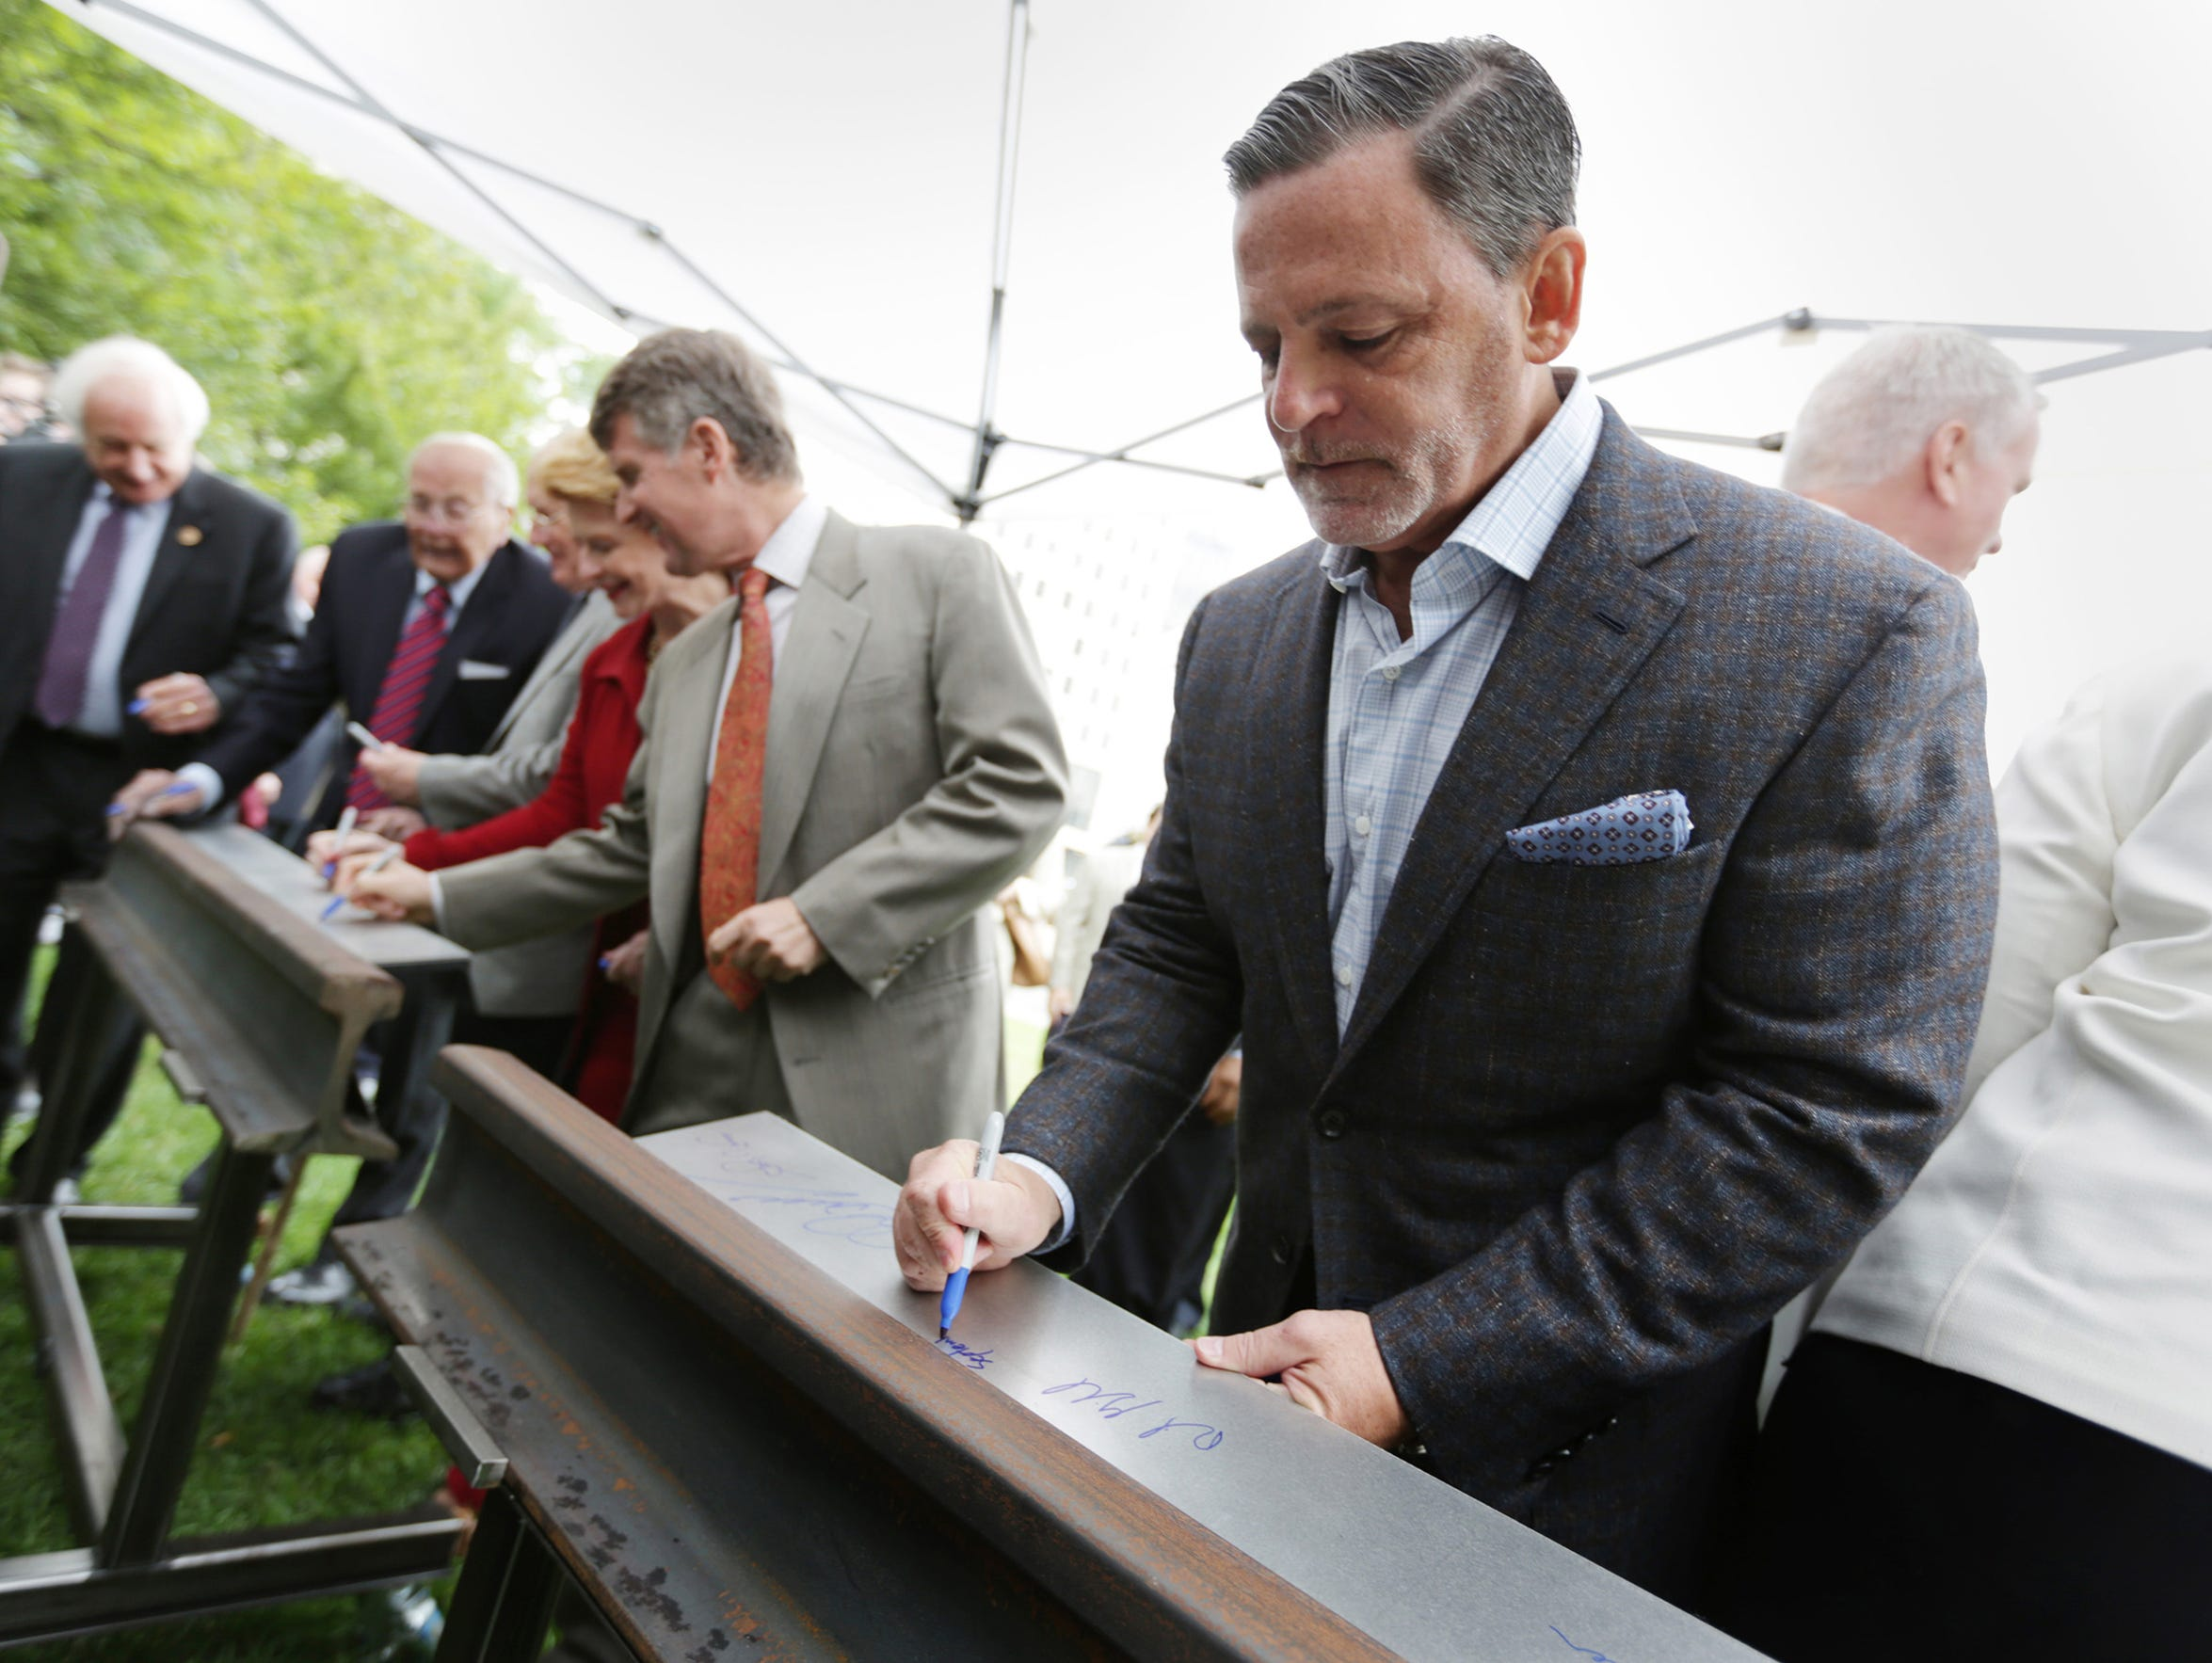 Dan Gilbert, right signs a rail during a Ceremony to